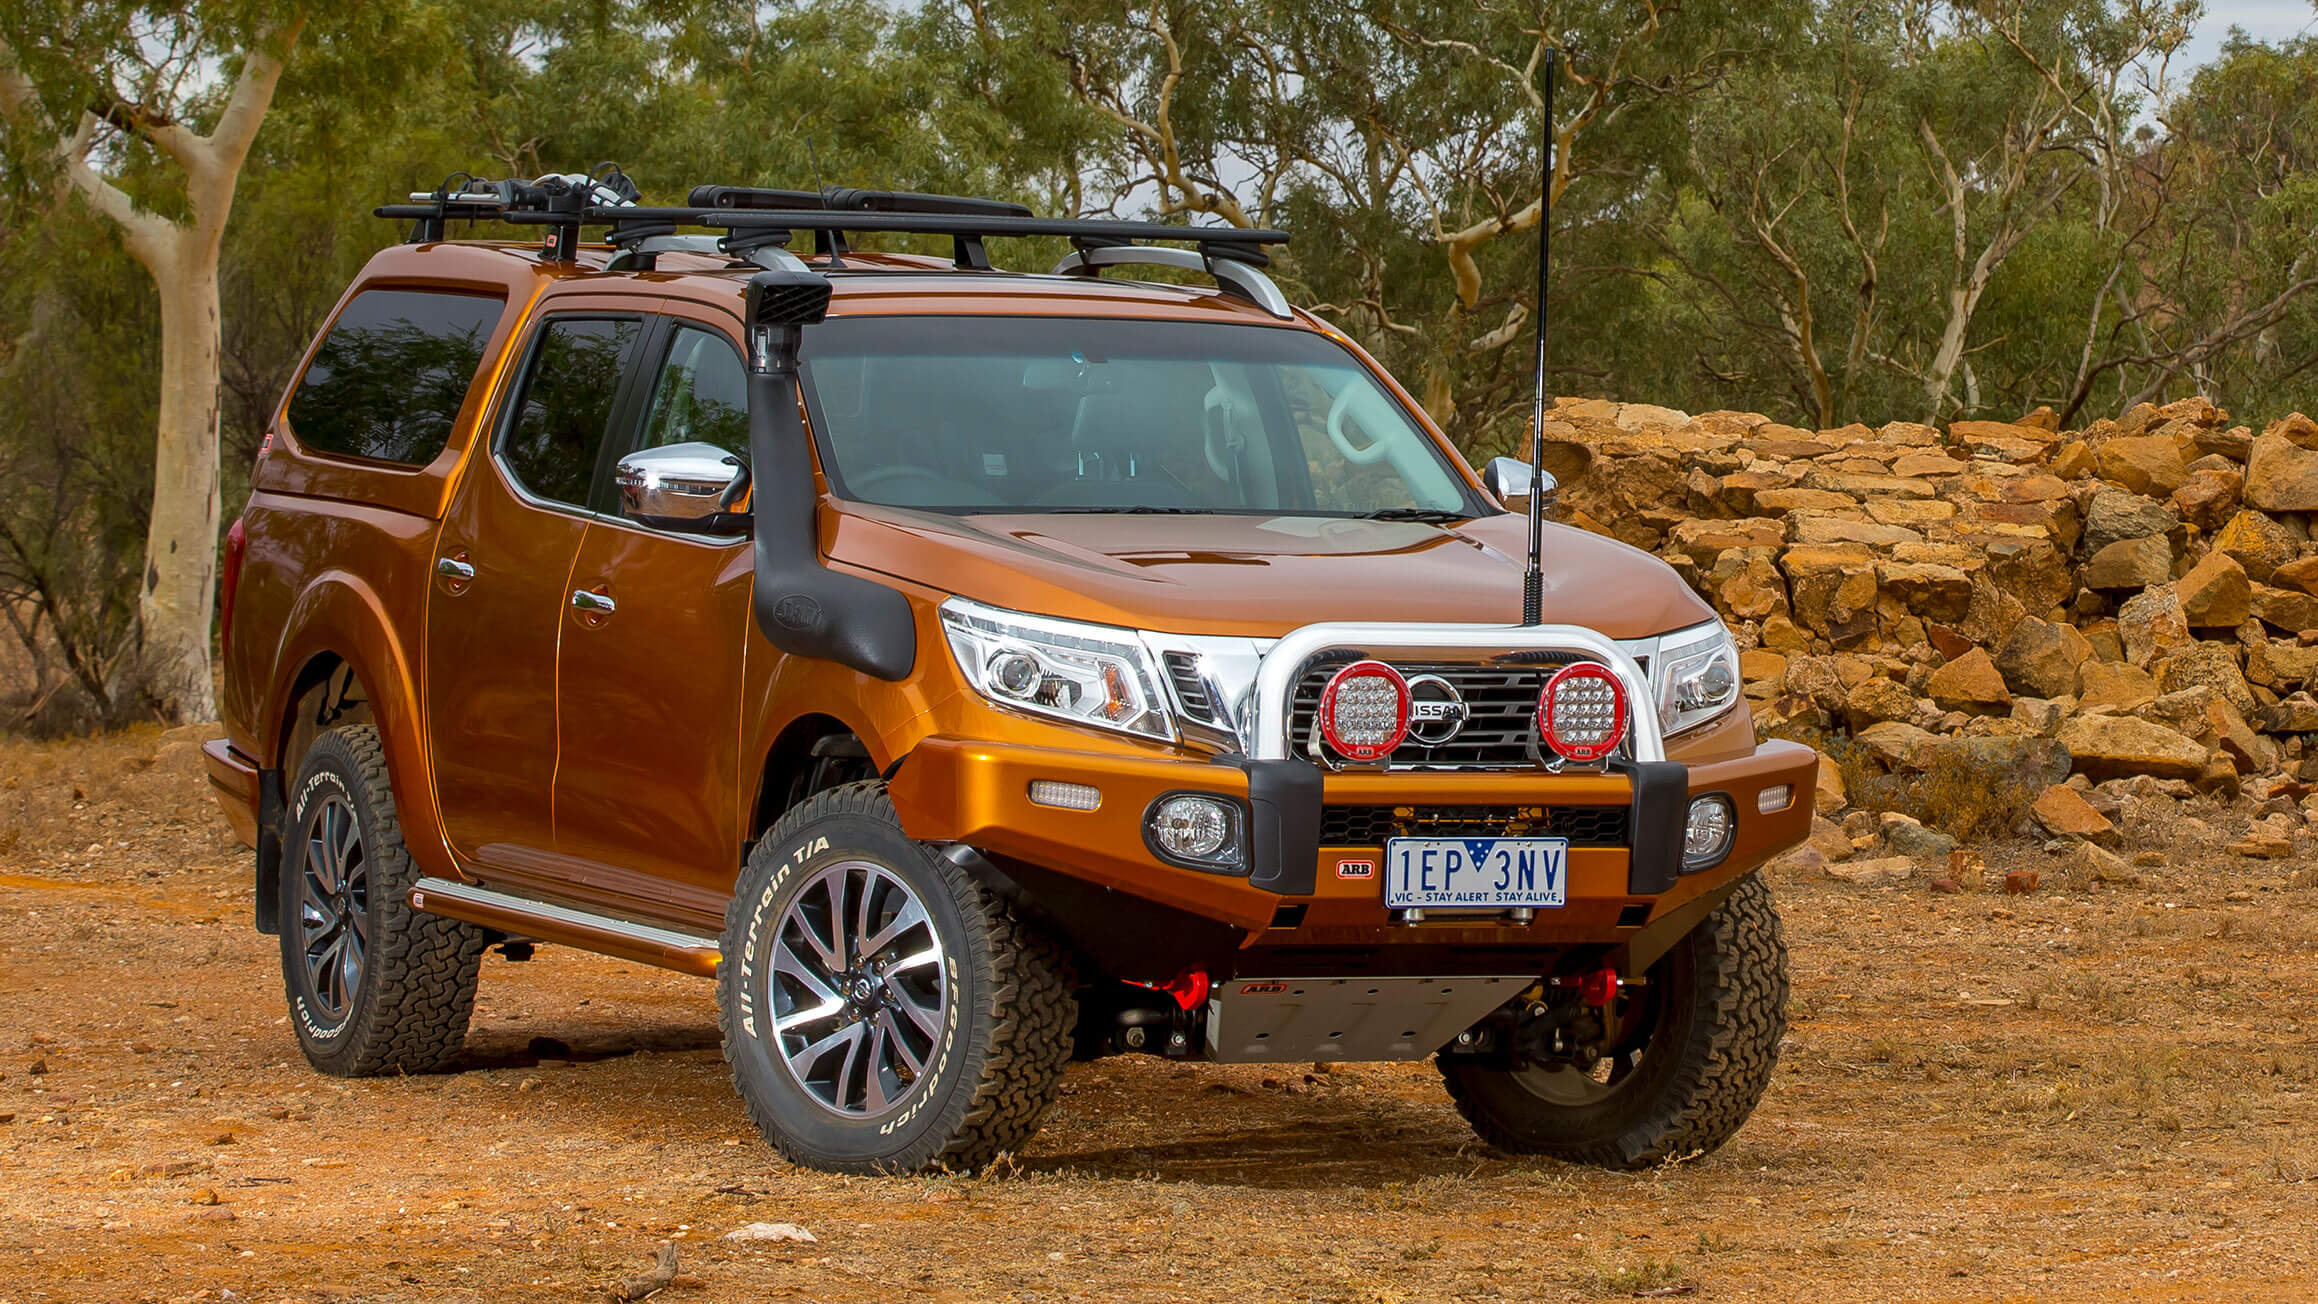 2016 Ford Ranger >> ARB 4×4 Accessories | Bull Bars & Protection Equipment - ARB 4x4 Accessories